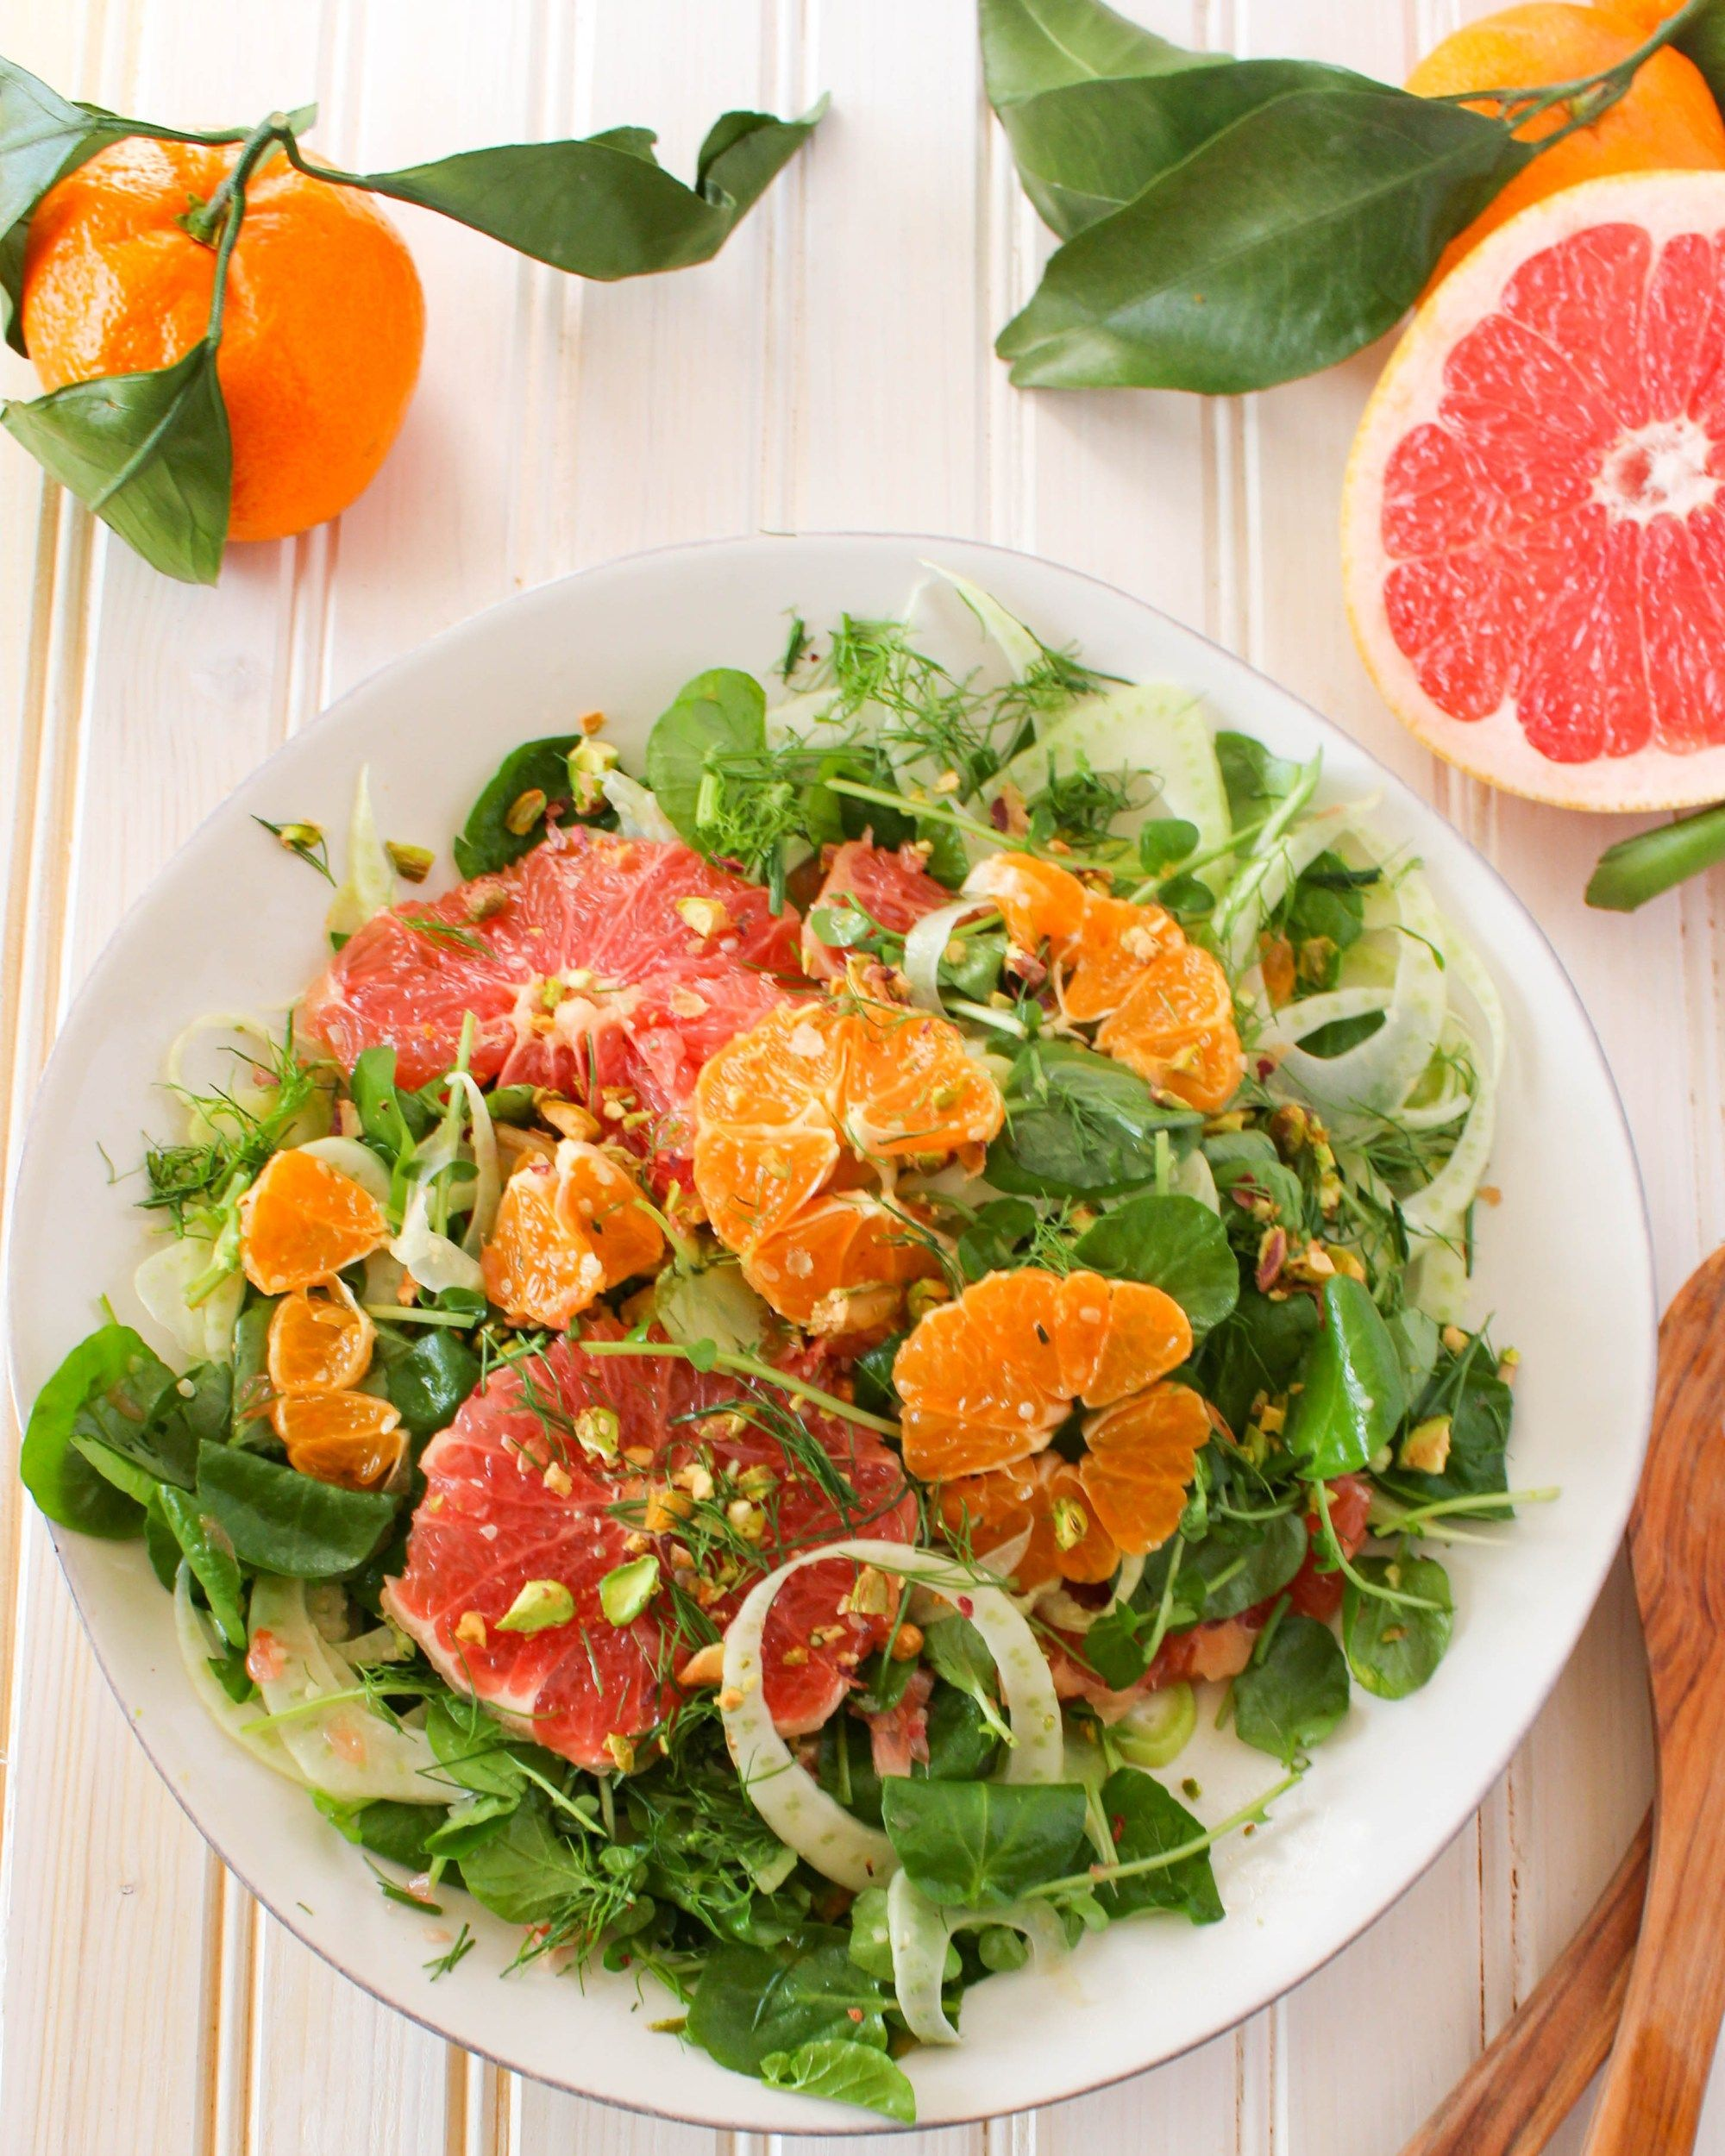 Winter Citrus Salad With Watercress Fennel Pistachios